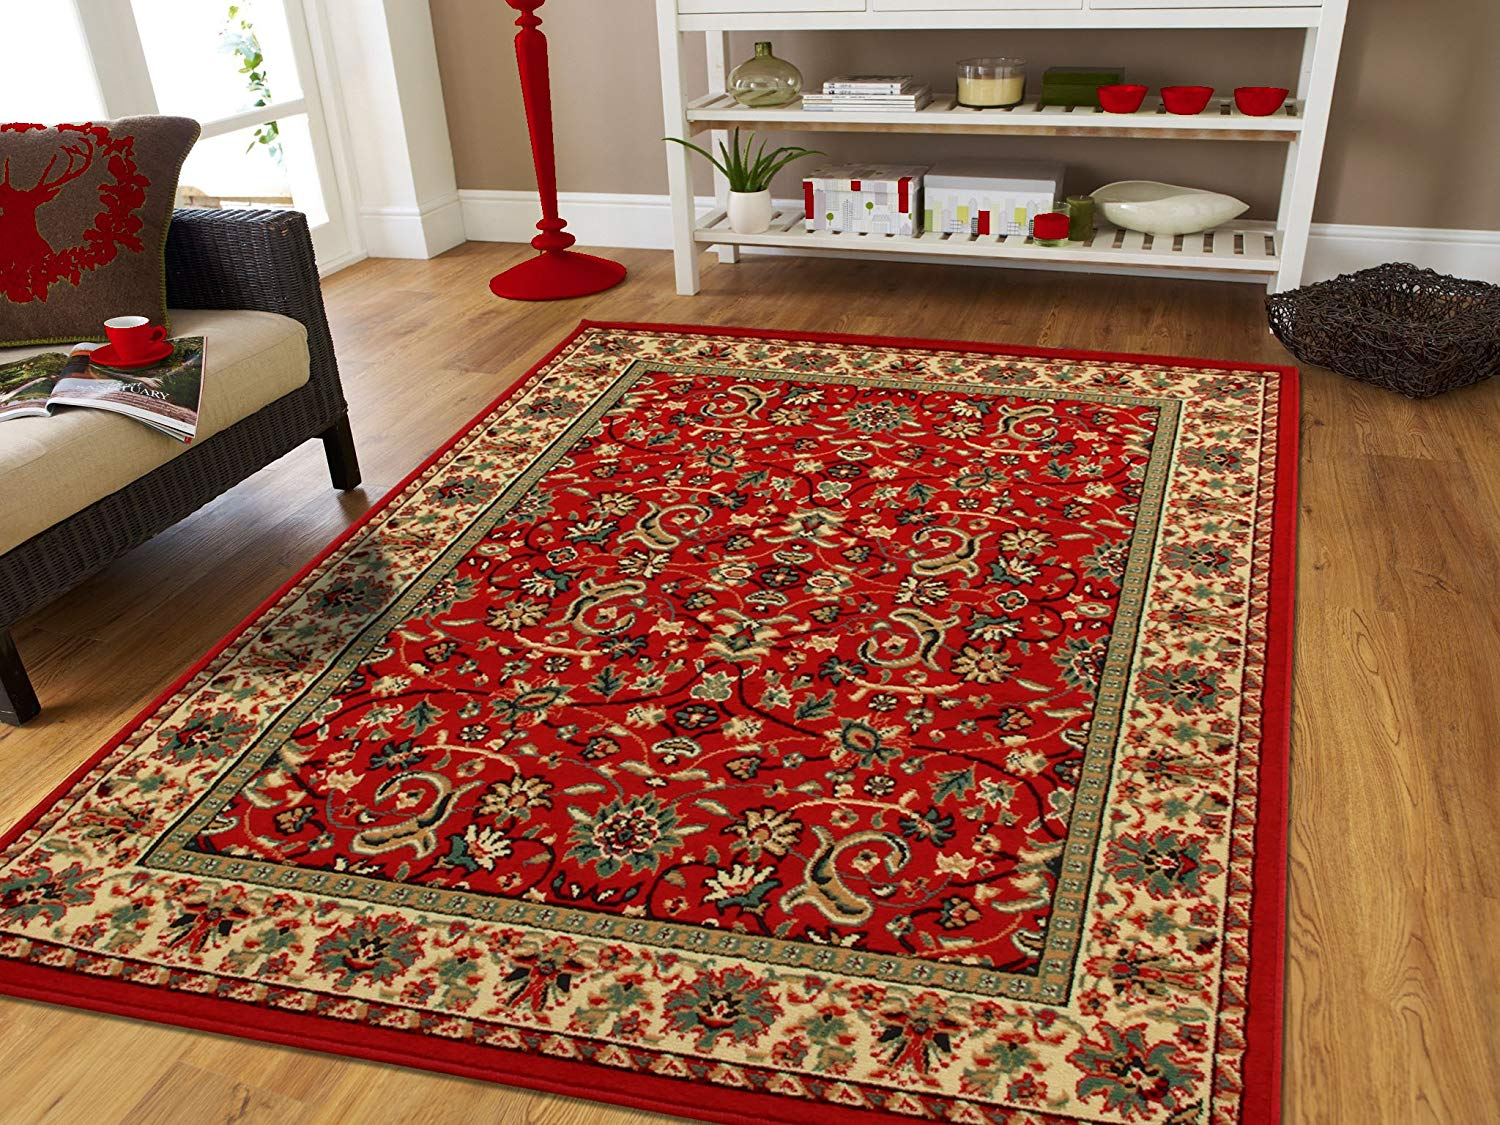 Enhancing the beauty of your floor with persian rugs